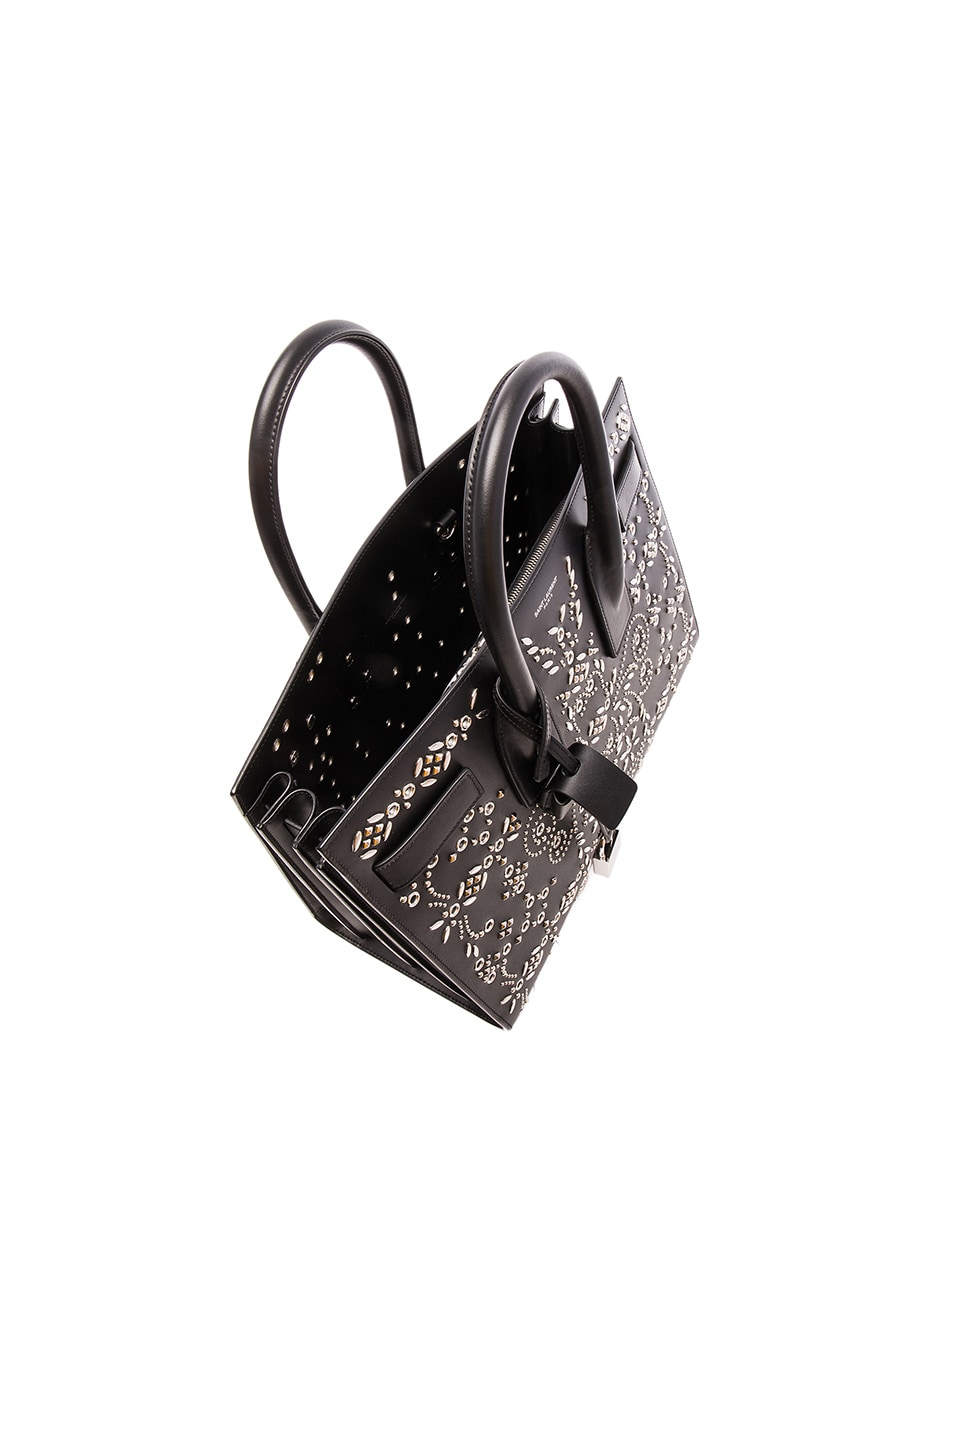 Saint Laurent Small Bandana Embroidery Sac De Jour in Black | FWRD